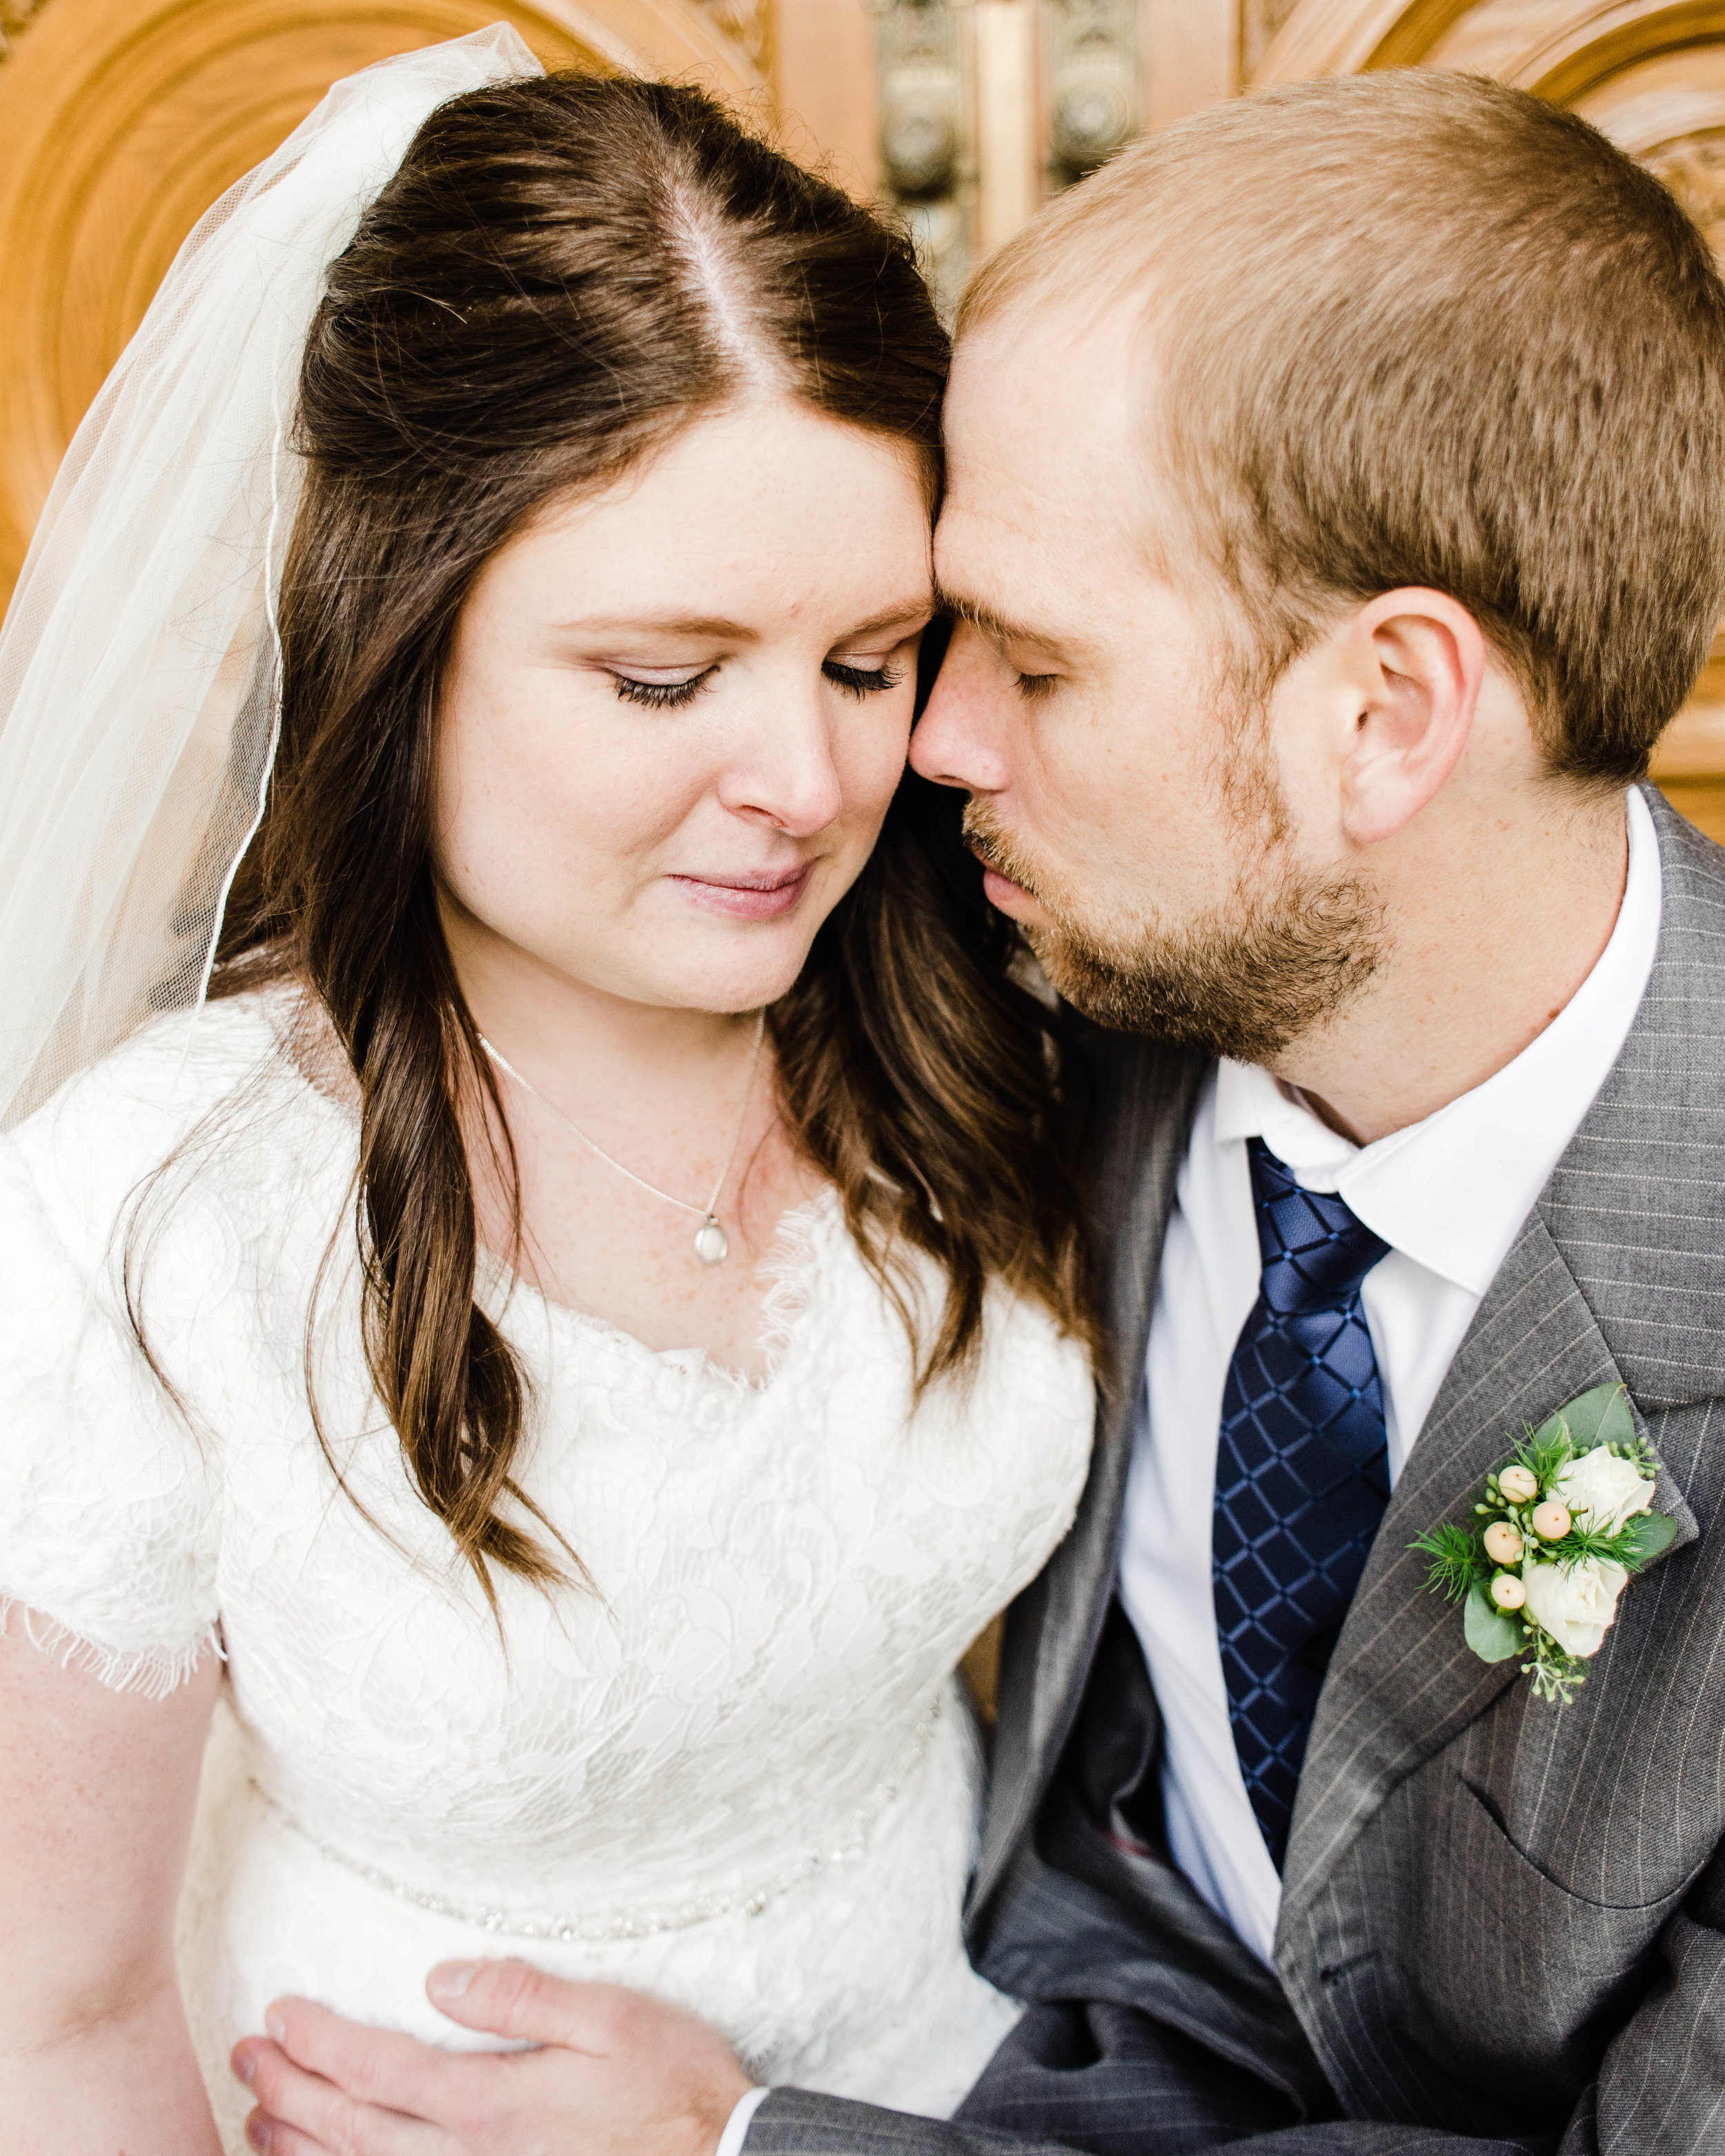 LINDSAY+BRAD-BRIDALS-Sadie_Banks_Photography-117.jpg